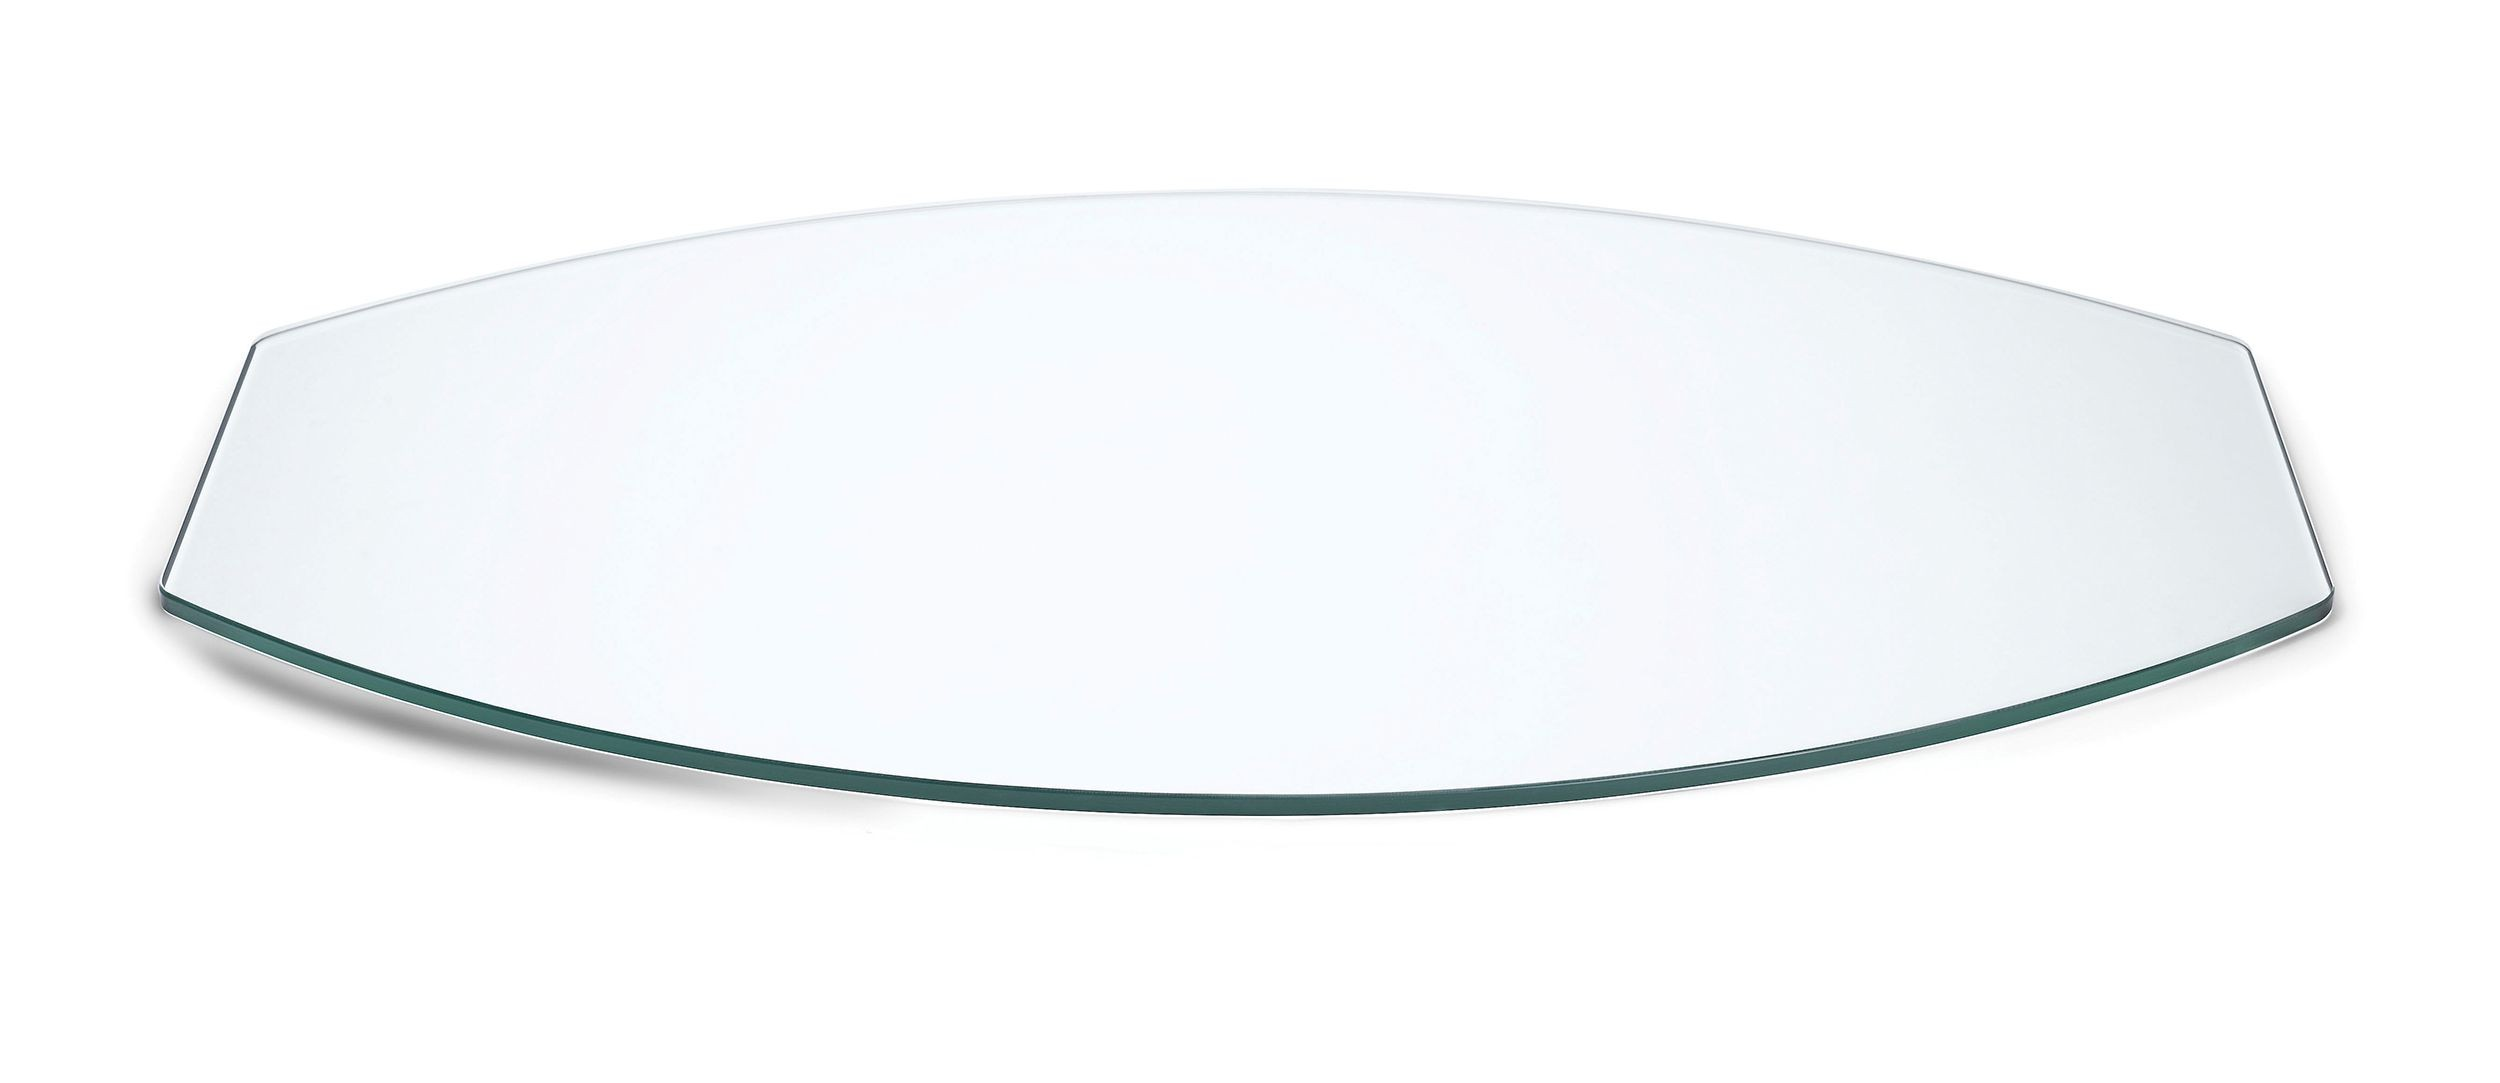 Oval Display Surface Clear Tempered Glass  - 33.5